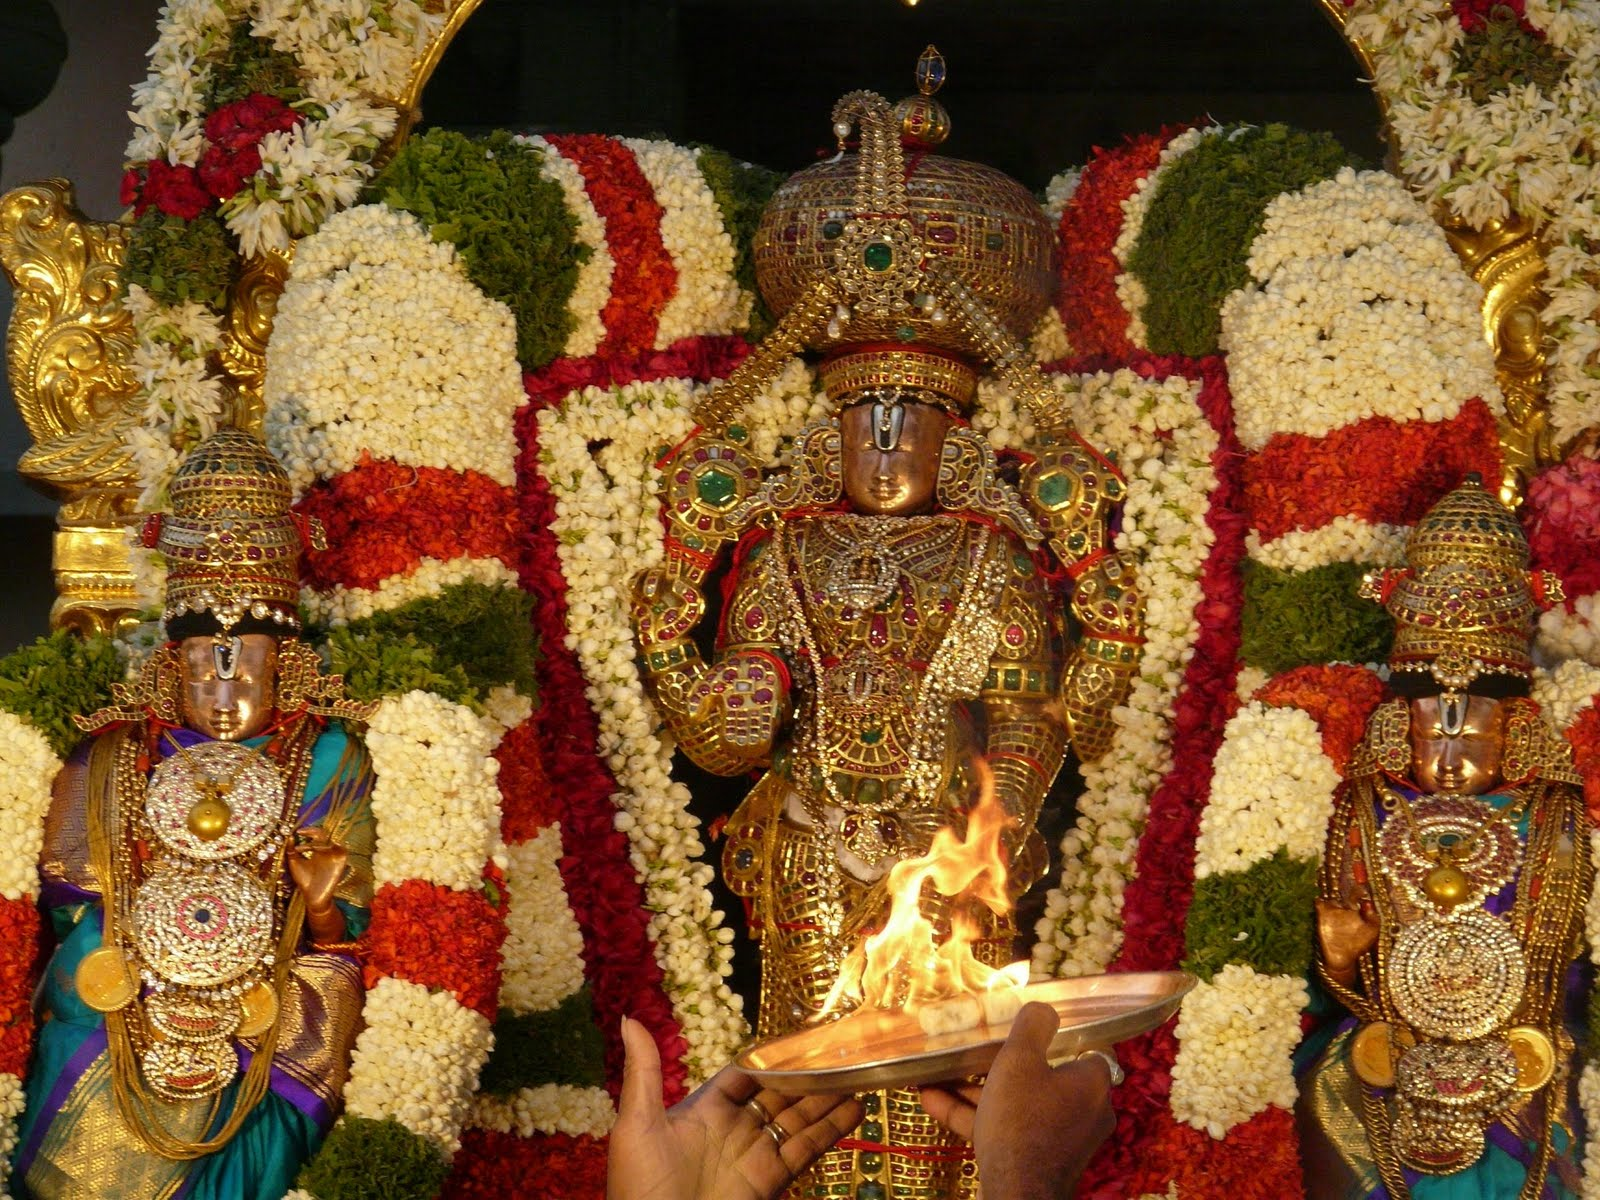 Tirupati Balaji with his consorts